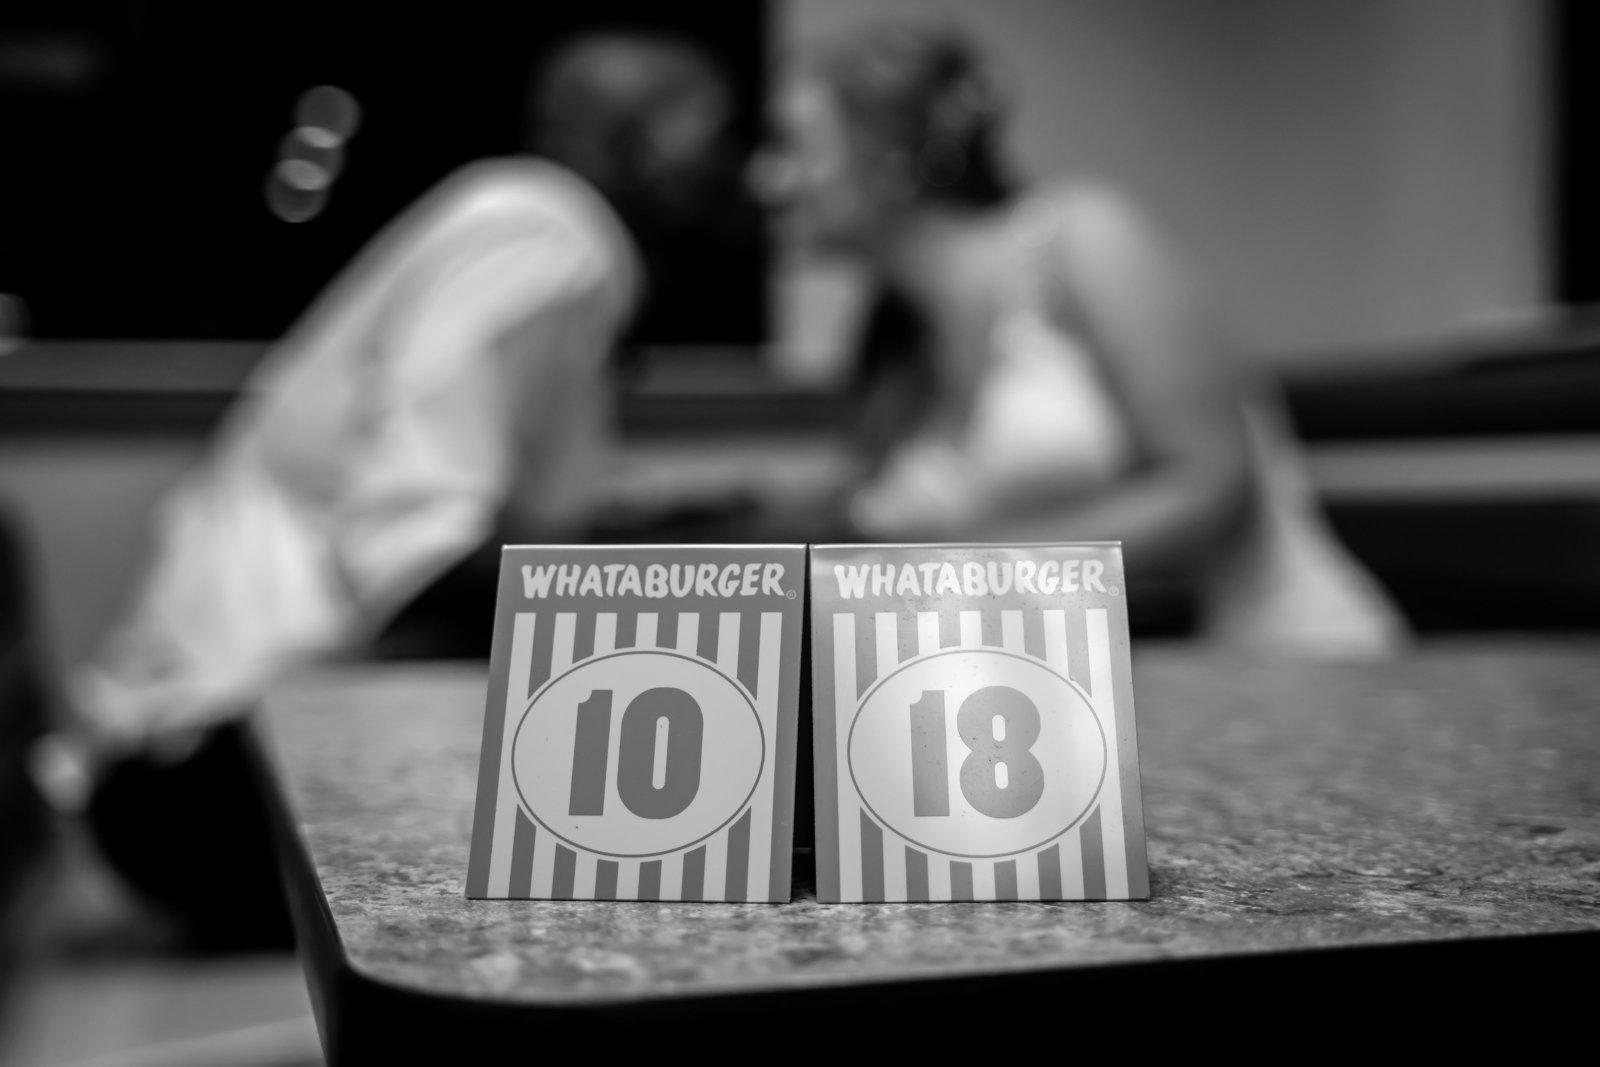 Texas-weddings-whataburger-405-brides-photographer